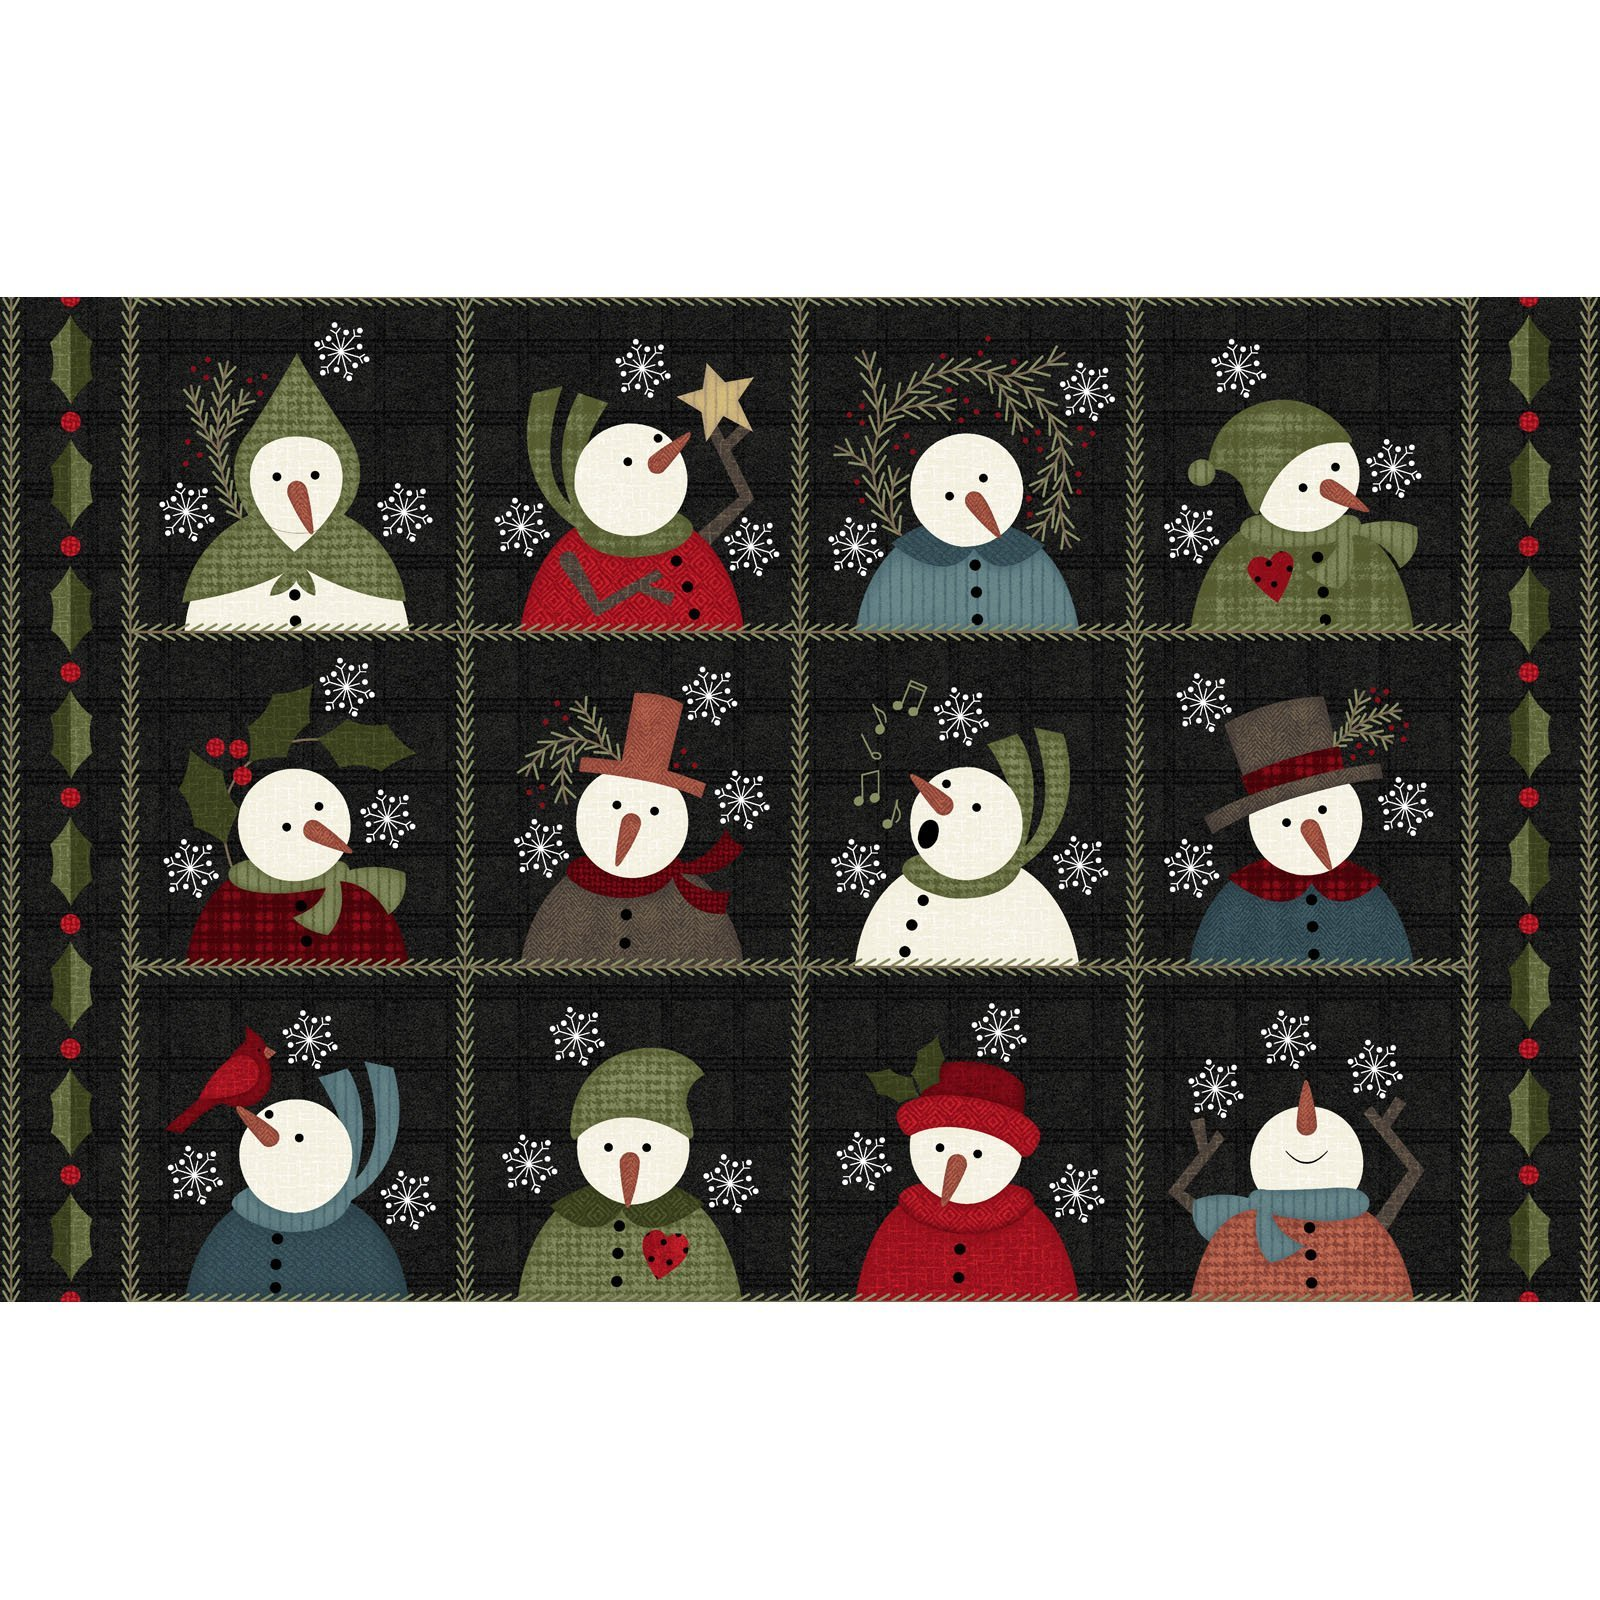 EESC-F9930 JK - SNOWDAYS FLANNEL BY BONNIE SULLIVAN SNOW SQS 9 CHARCOAL - ARRIVING IN JULY 2021